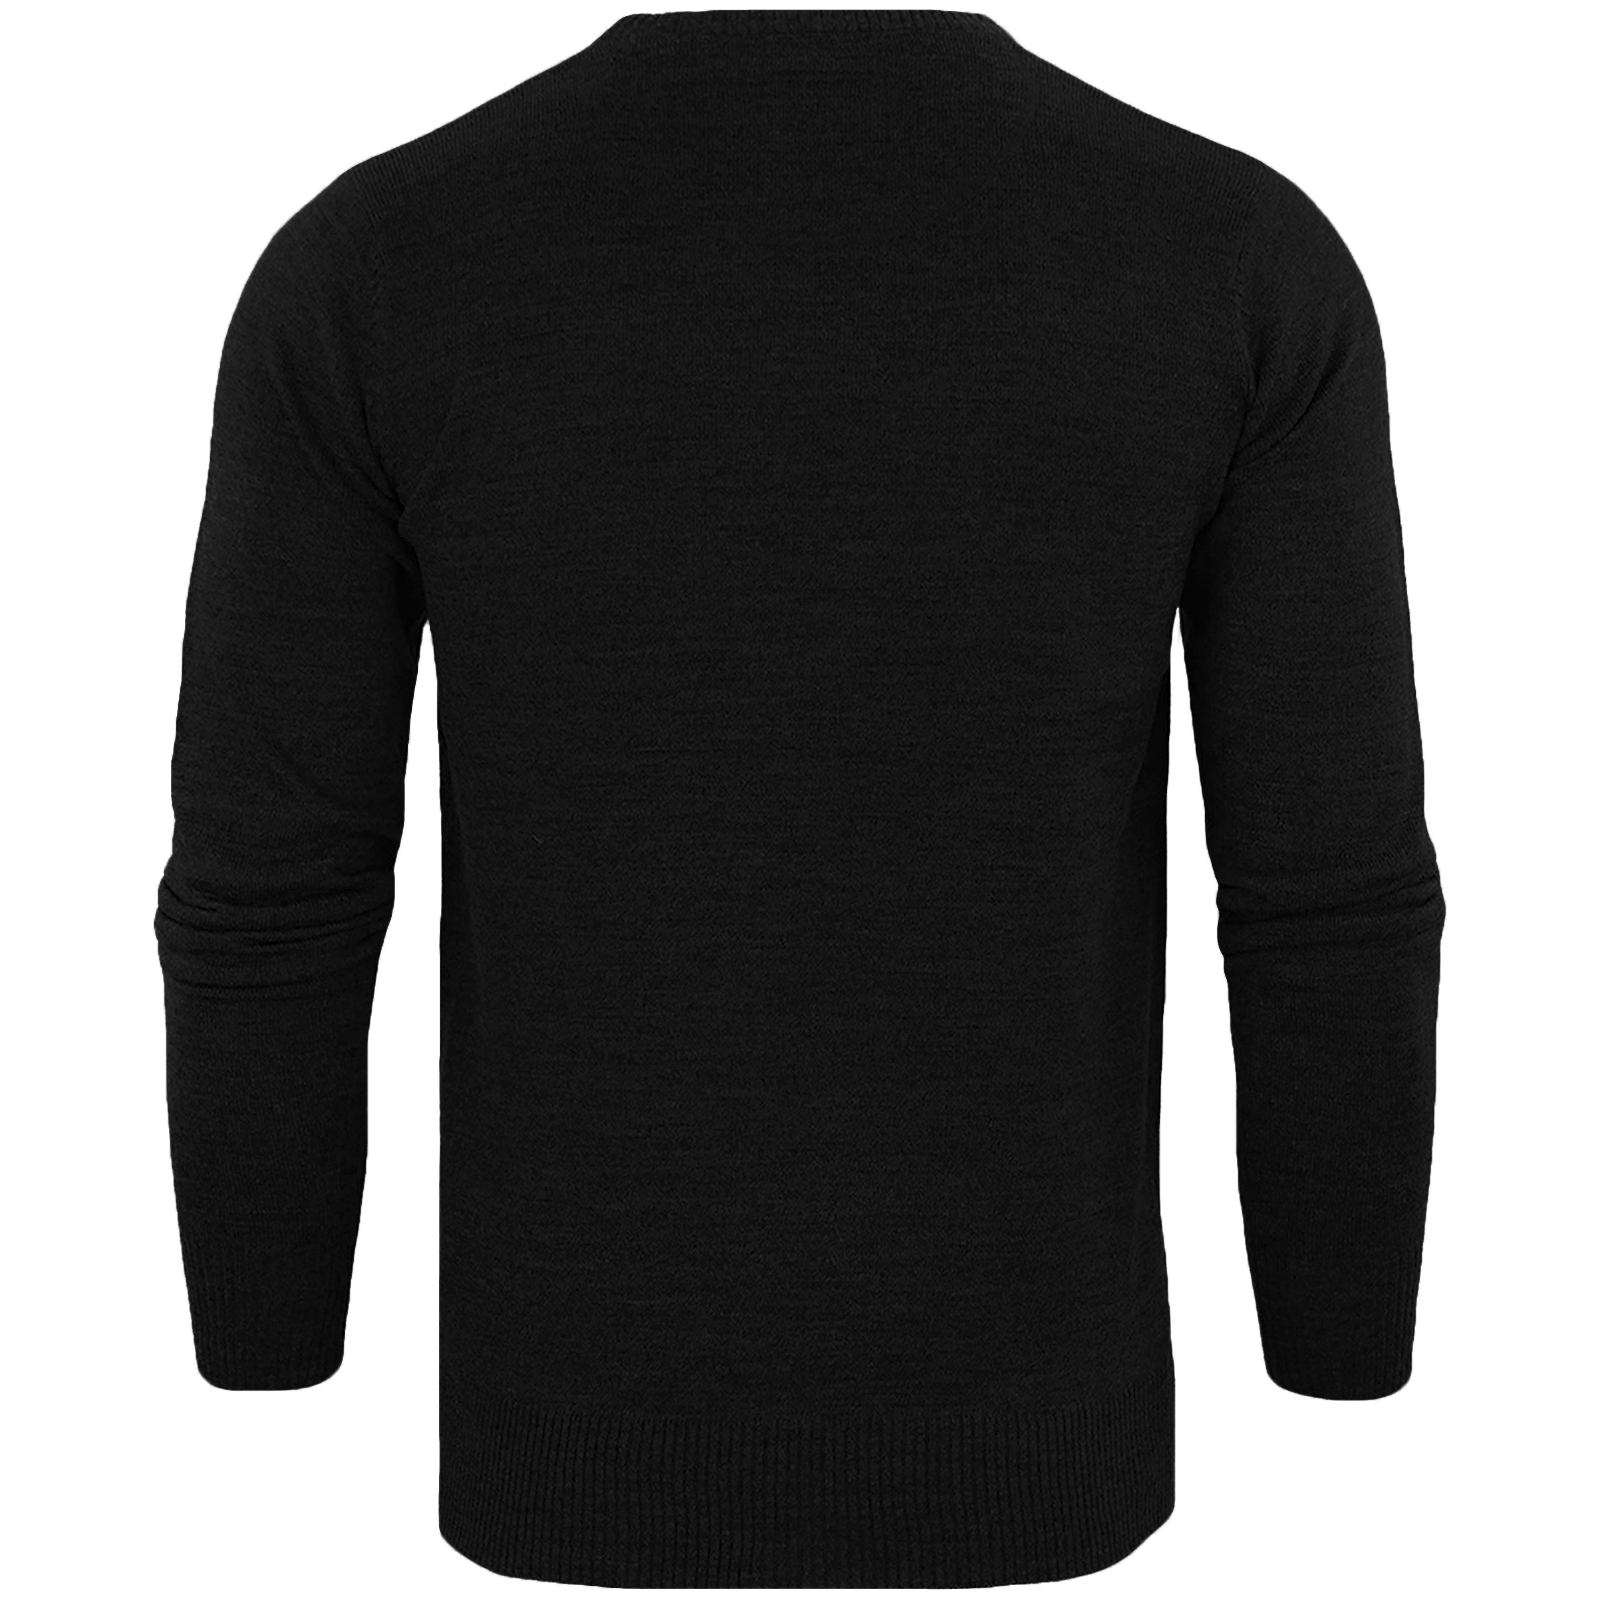 Brave-Soul-Mens-Parse-Knitted-Long-Sleeve-Crew-Neck-Jumper-Sweater-Pullover-Top thumbnail 5